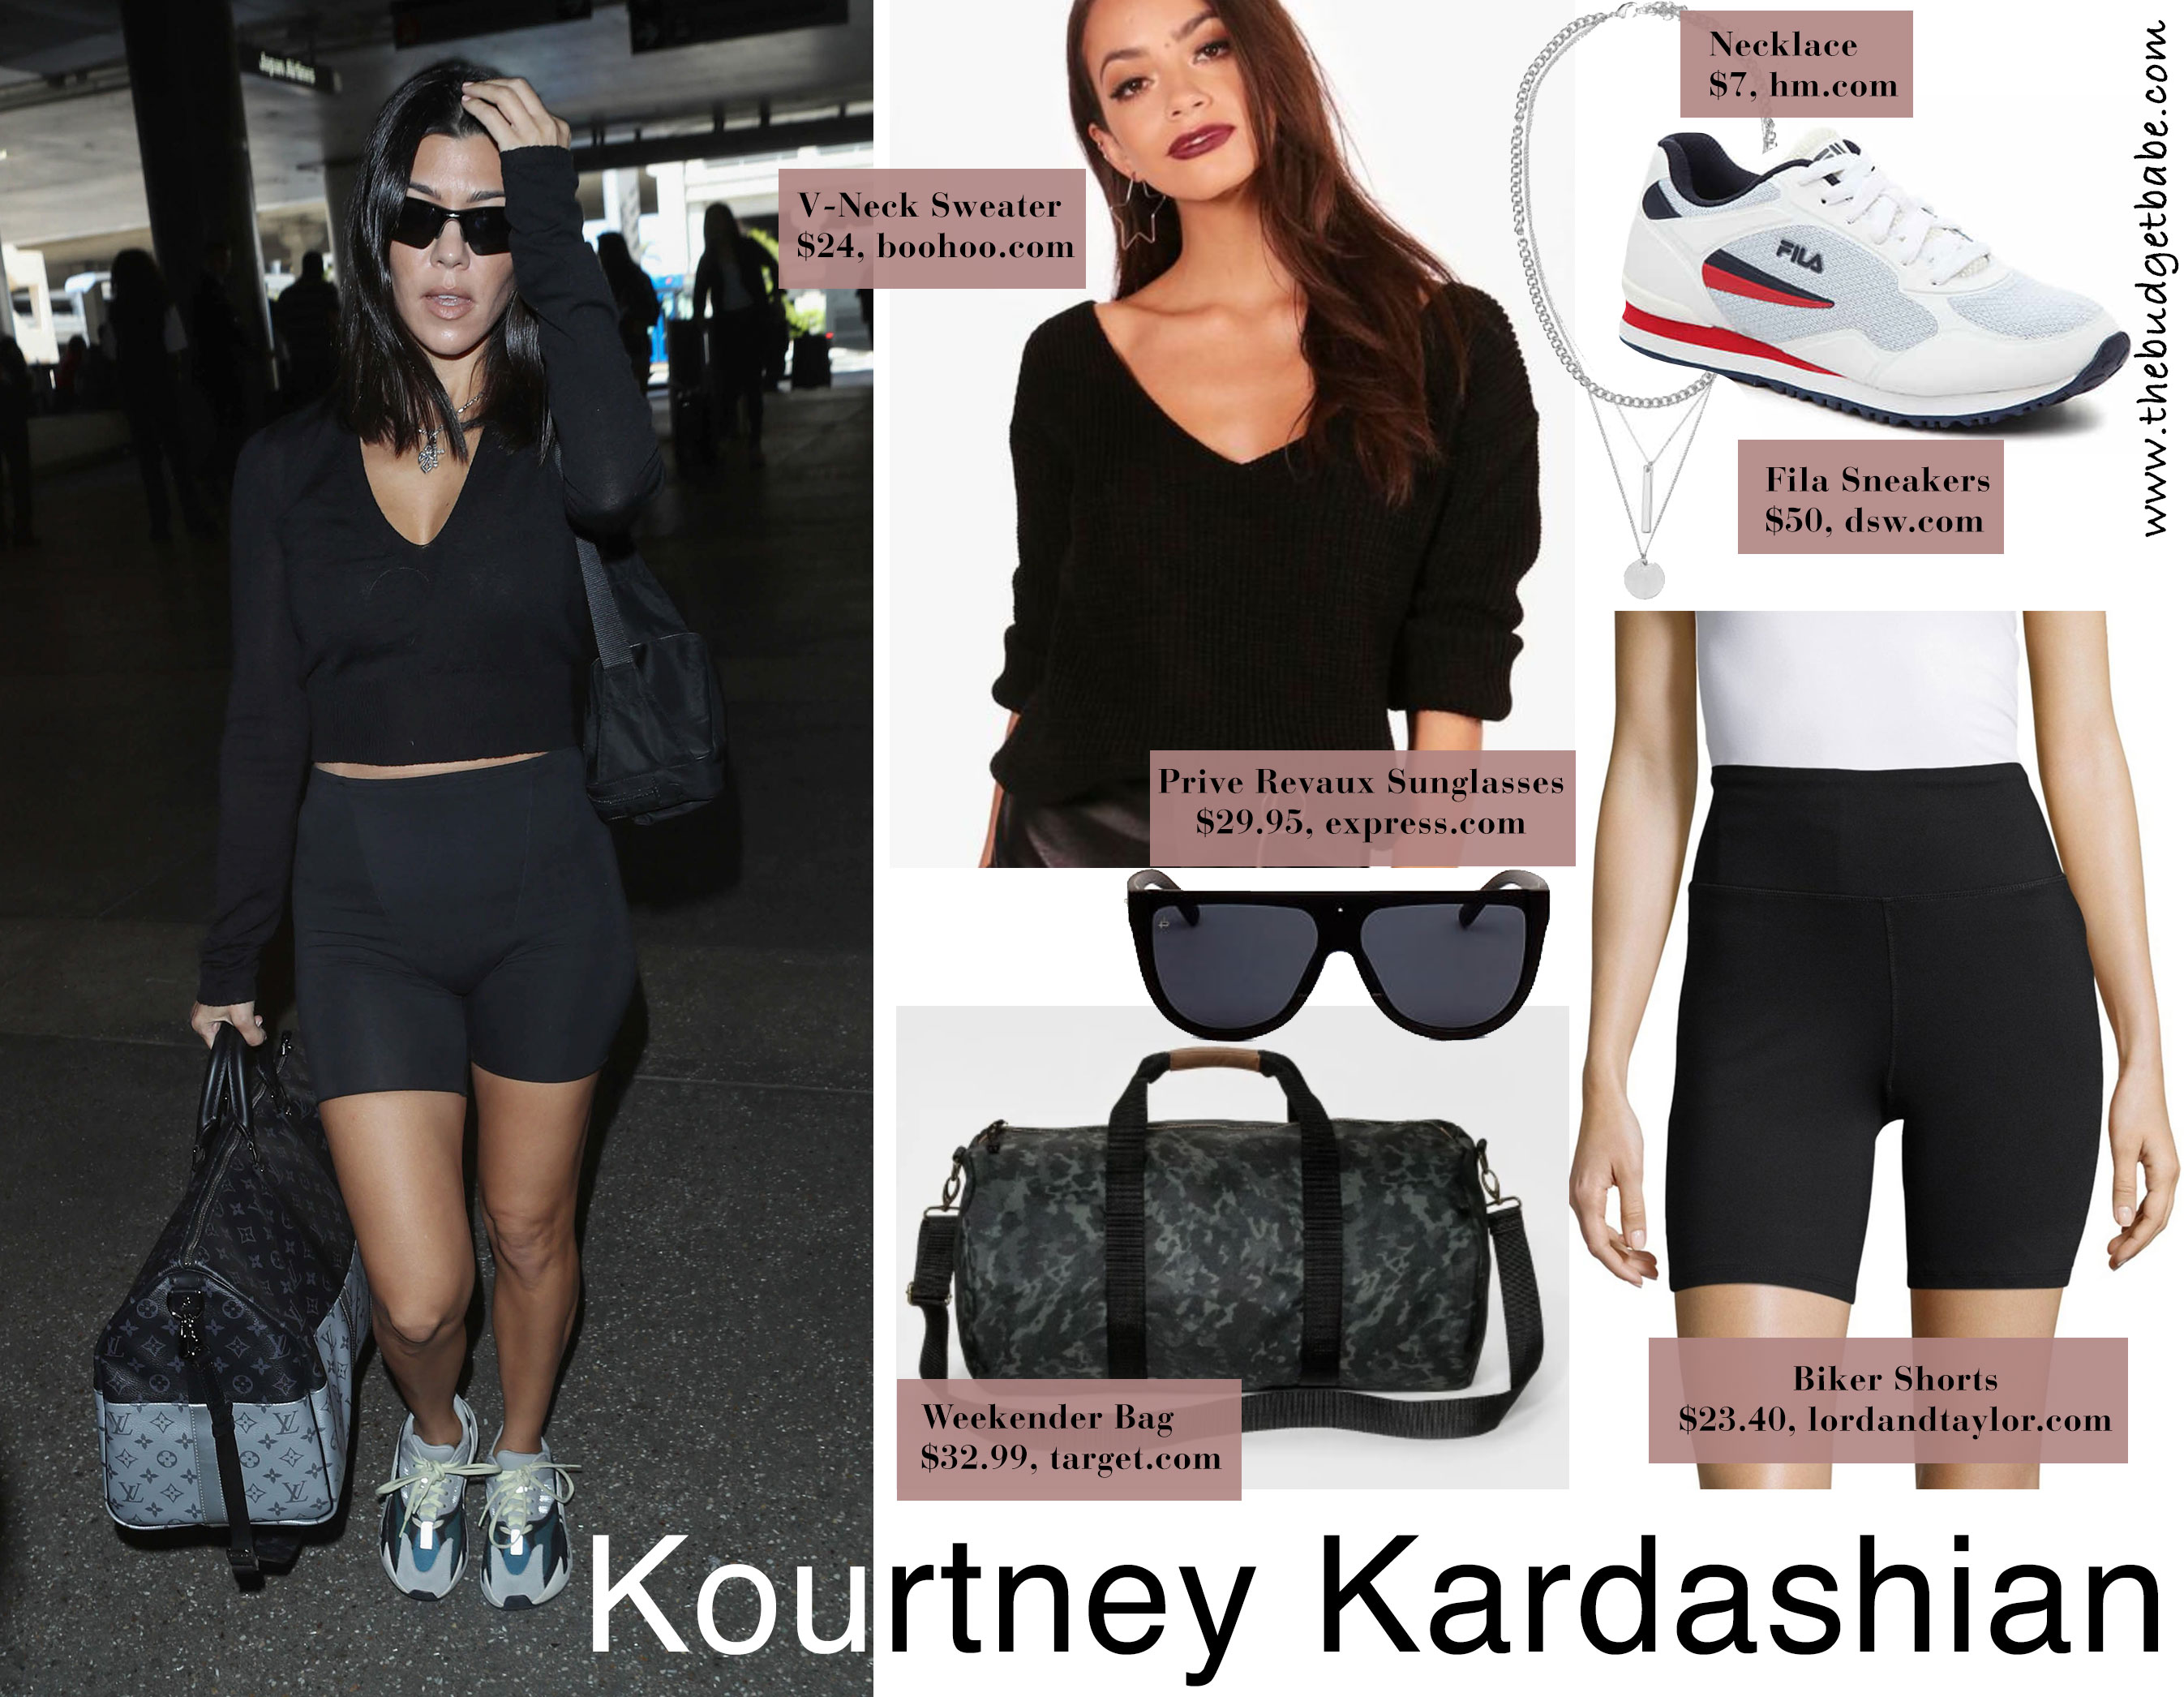 Kourtney Kardashian's biker shorts airport outfit style for less